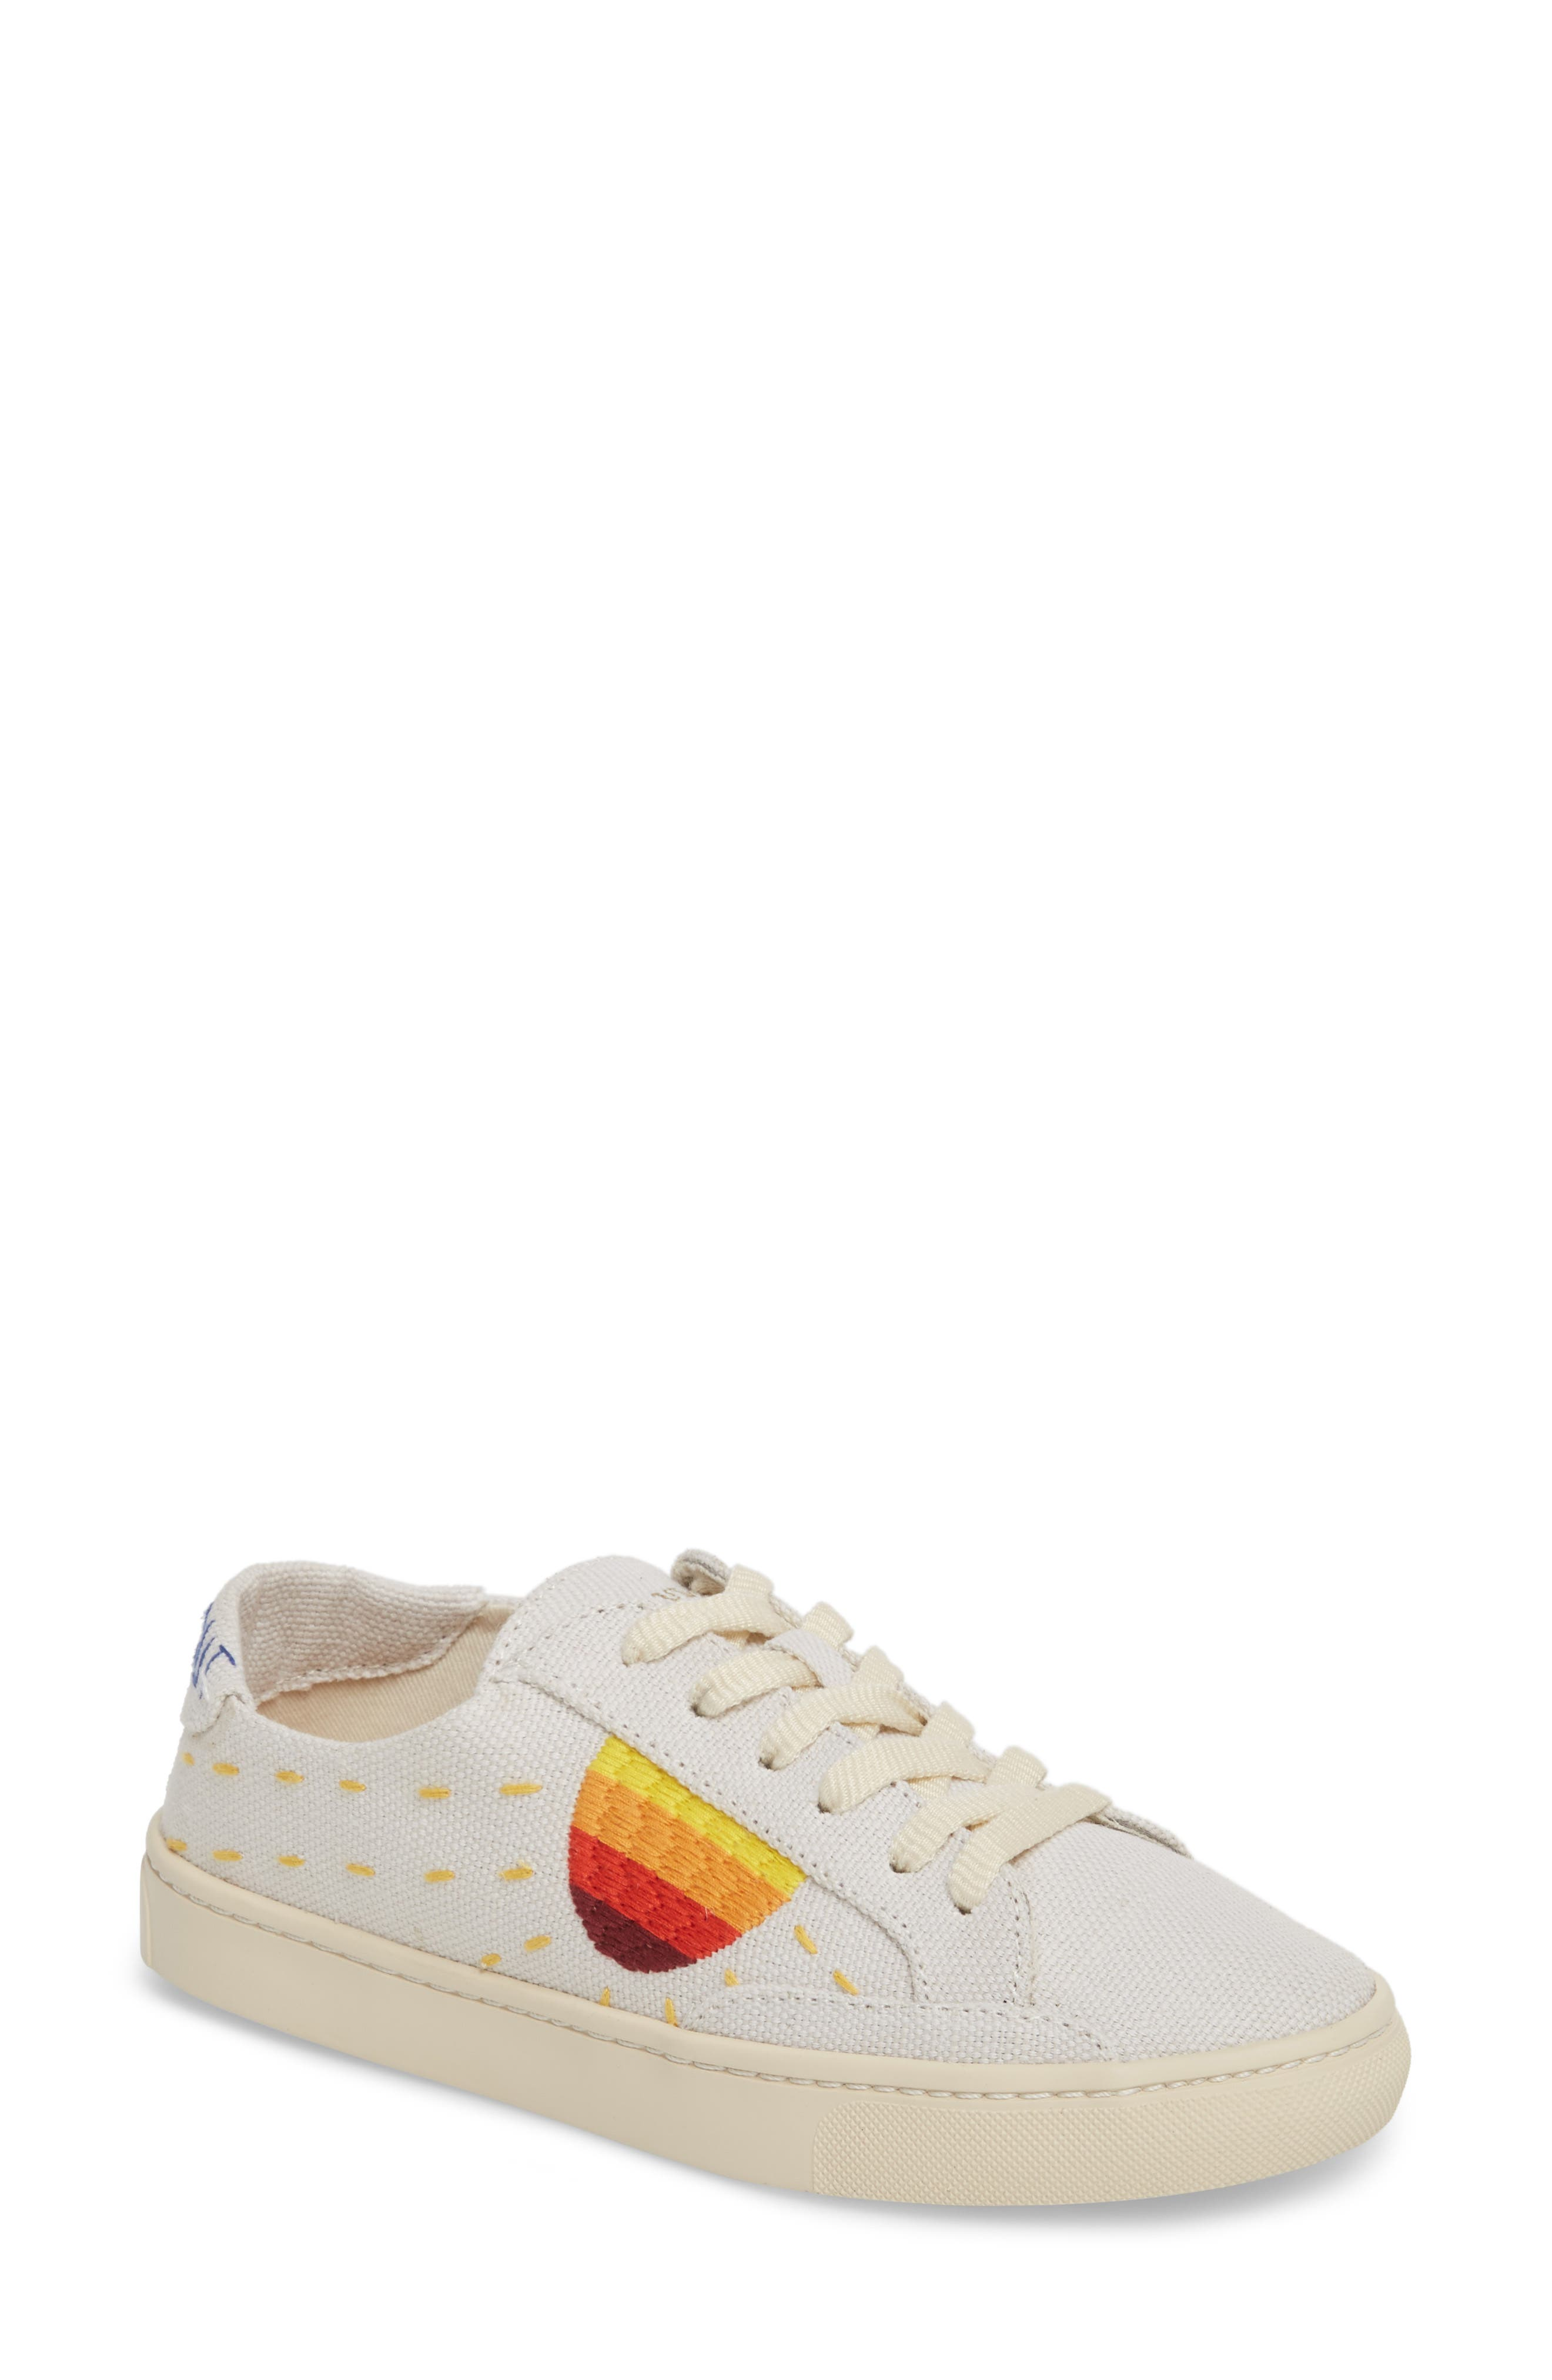 Embroidered Low Top Sneaker,                         Main,                         color, WHITE CANVAS